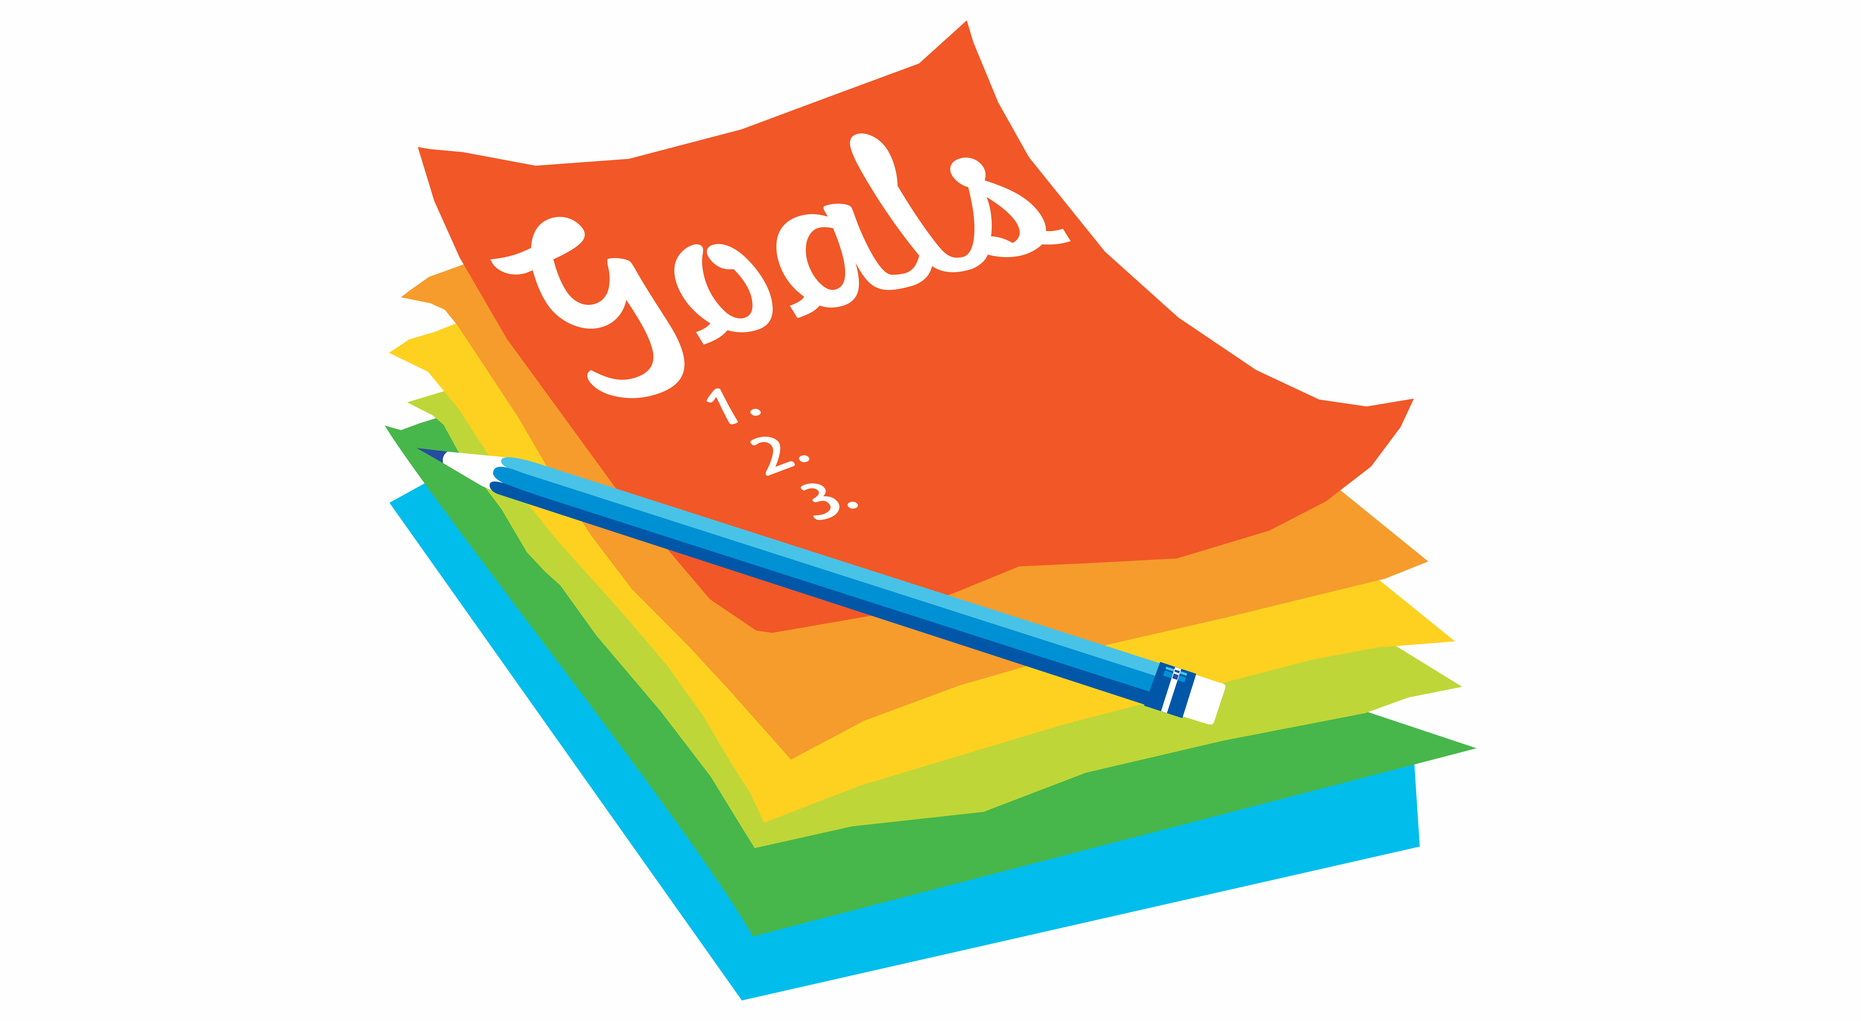 2017 goals clipart graphic transparent library Goals clipart academic goal - 113 transparent clip arts, images and ... graphic transparent library